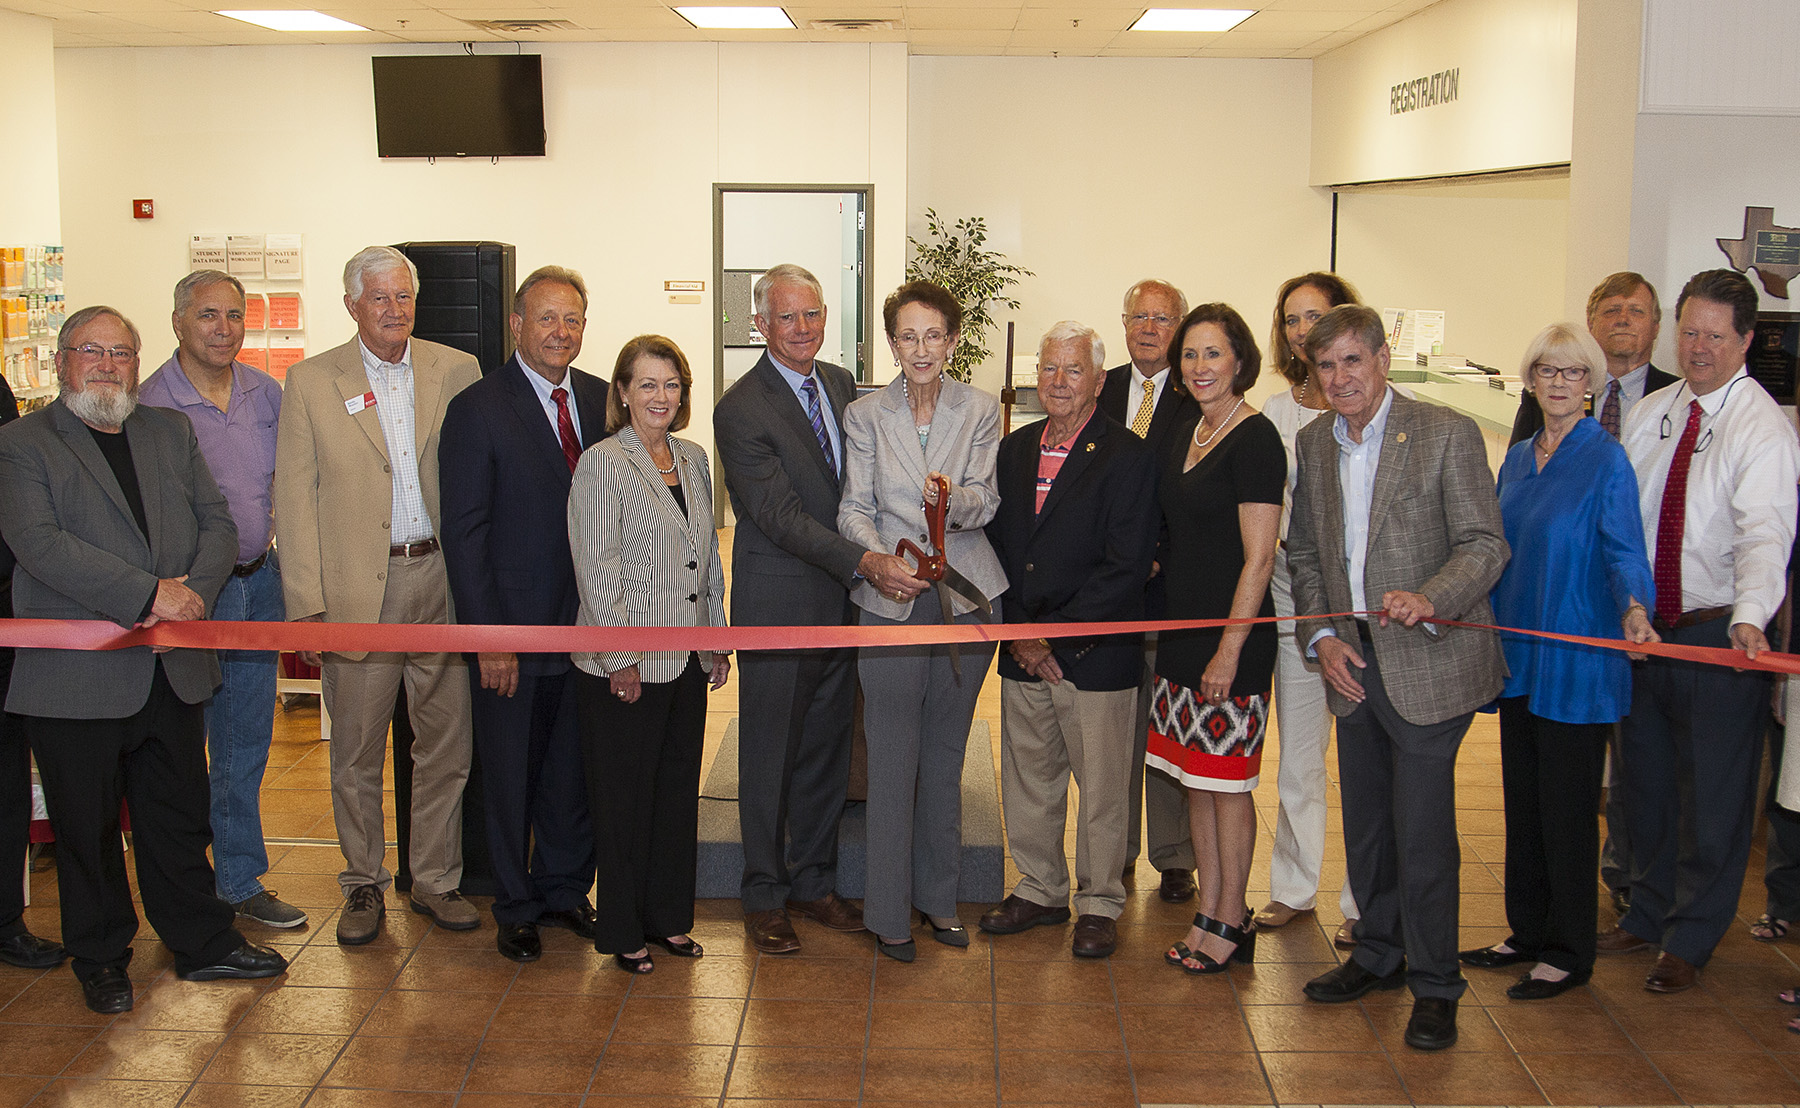 CAUSE TO CELEBRATE Ribbon cutting ceremony marks completion of Richmond Campus project